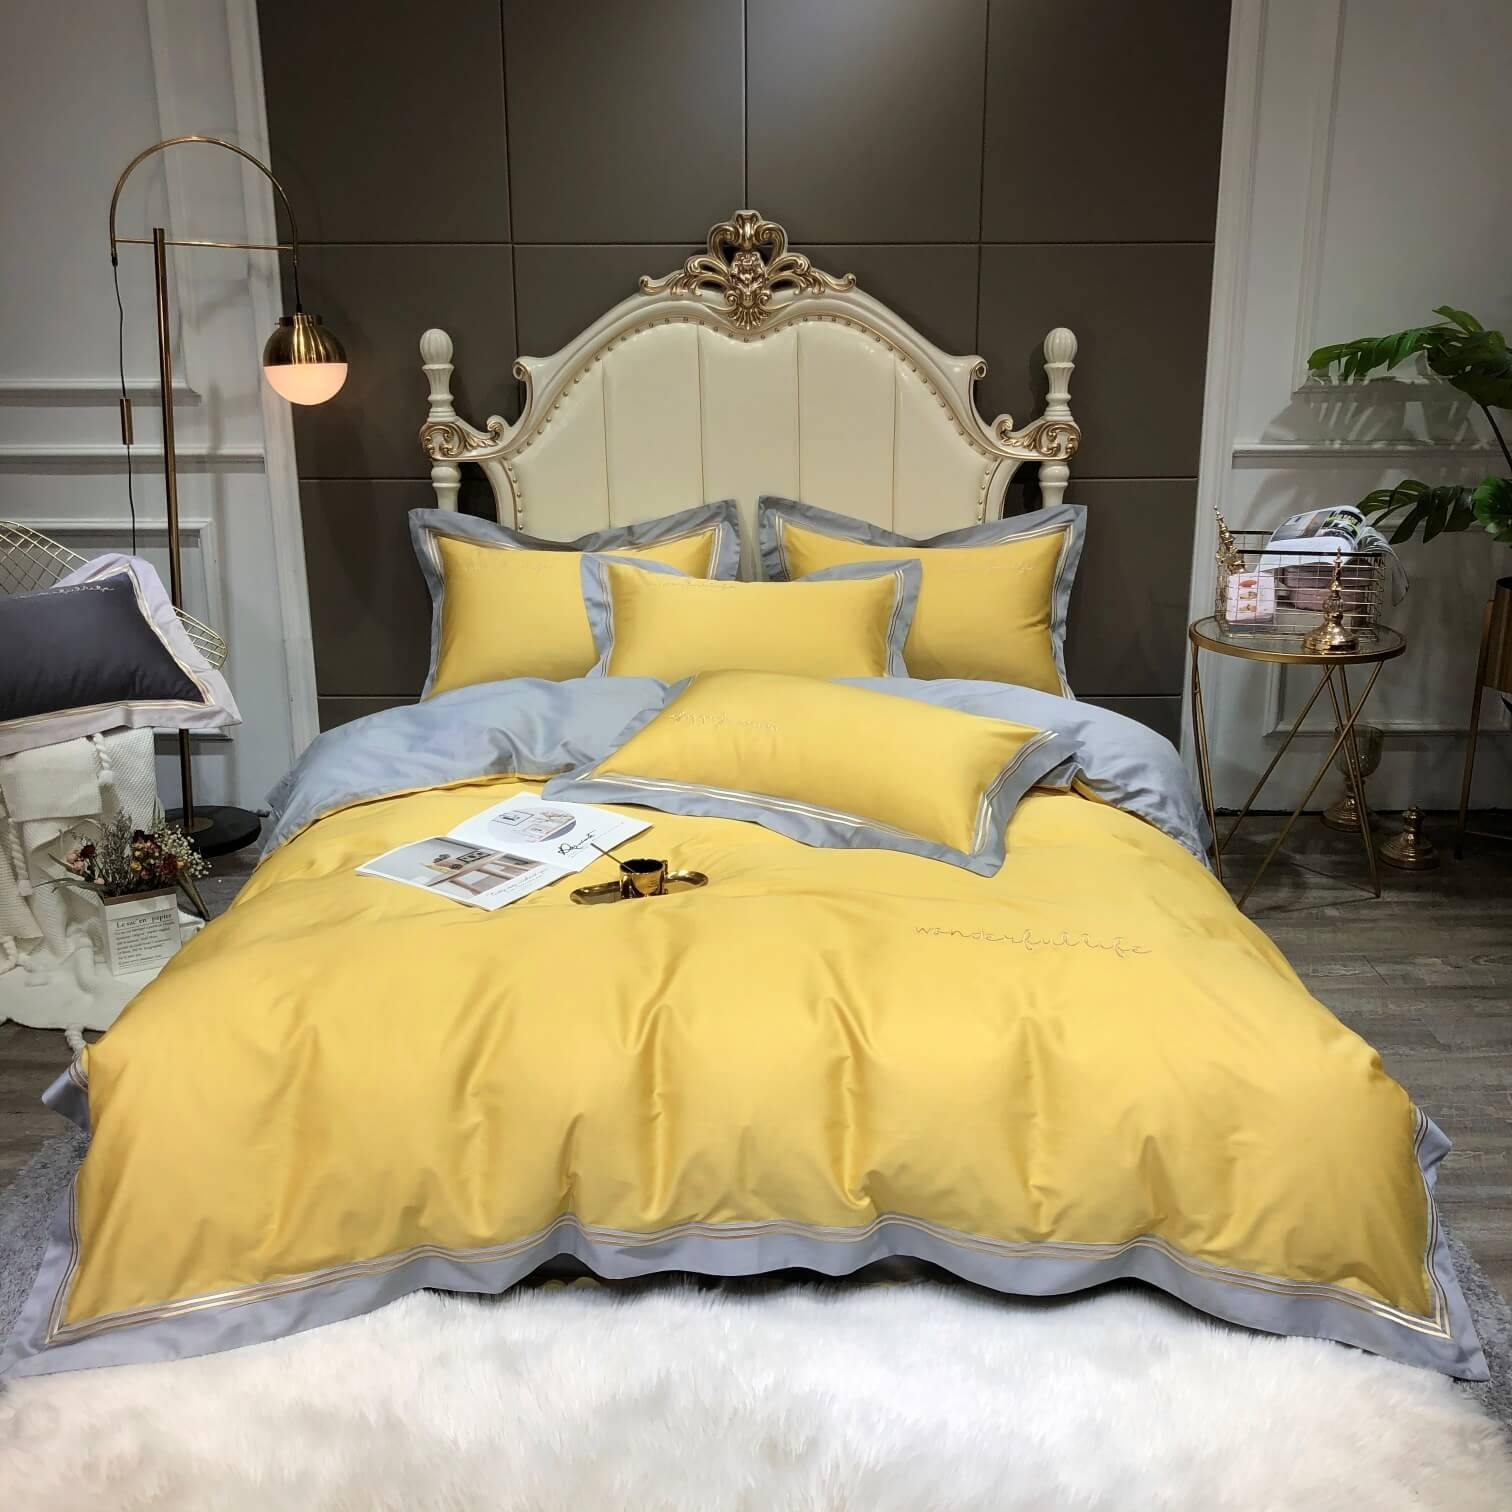 100% Silky Cotton Sateen Bedding in Bright Yellow and Neutral Grey